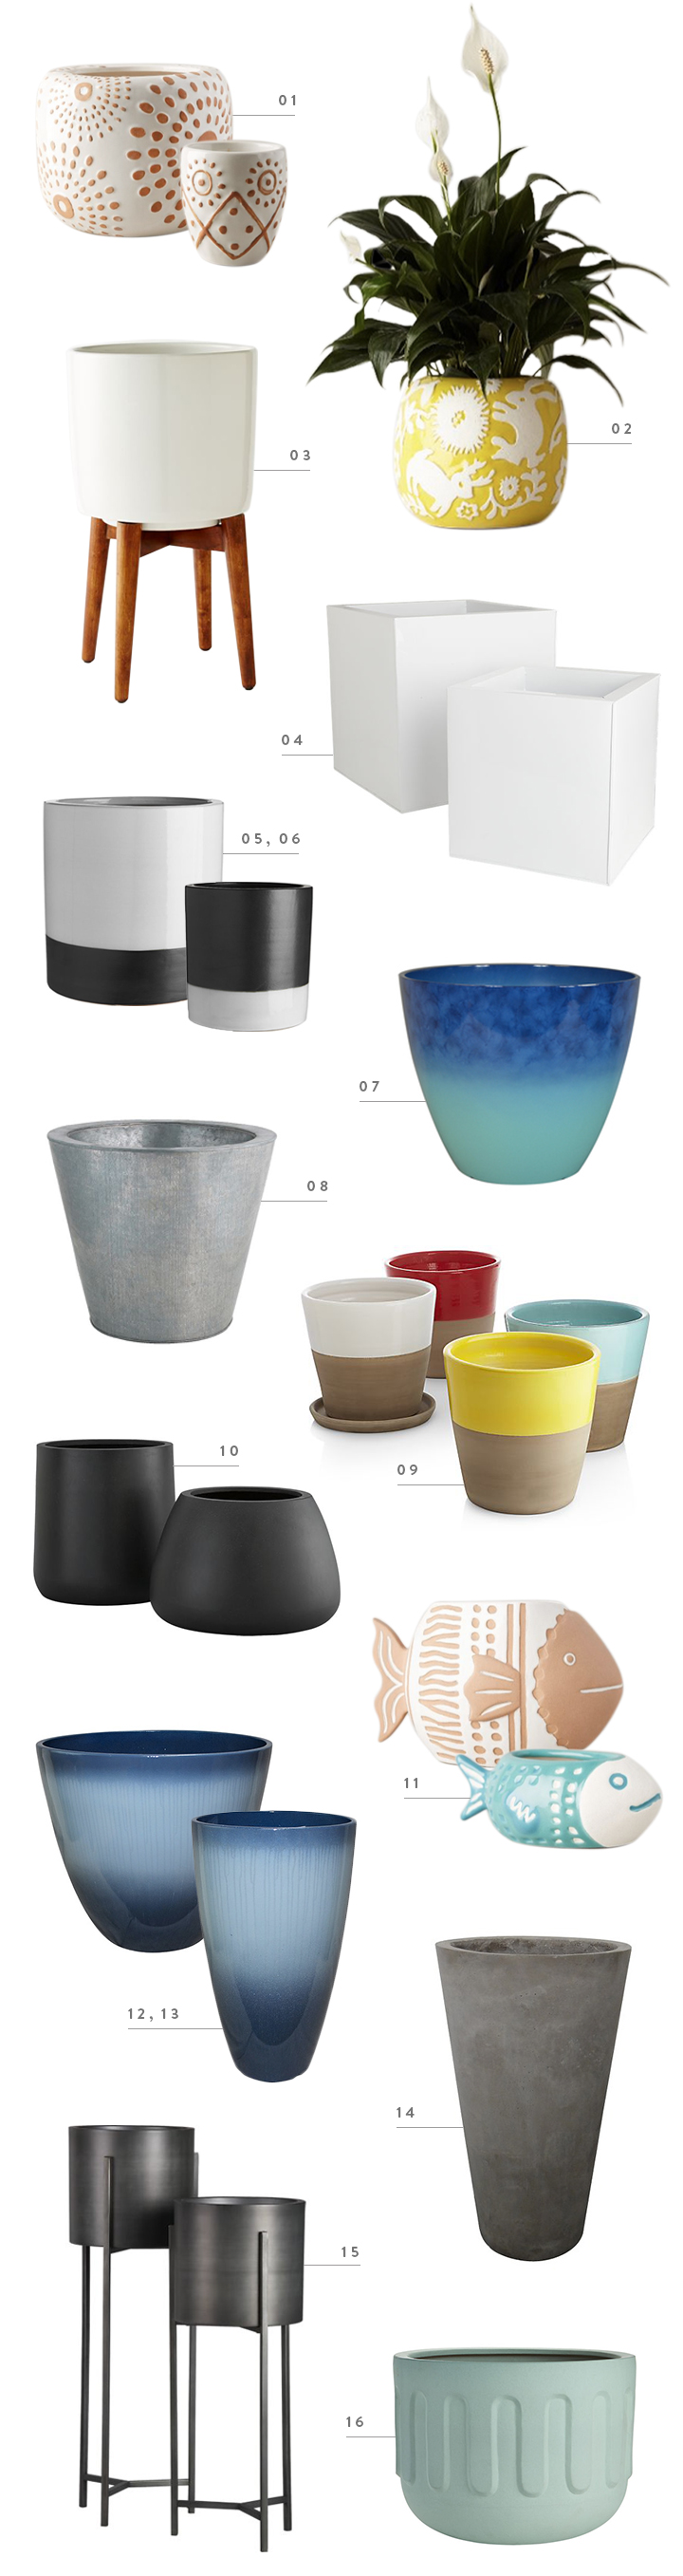 colorwhirl | outdoor planter roundup